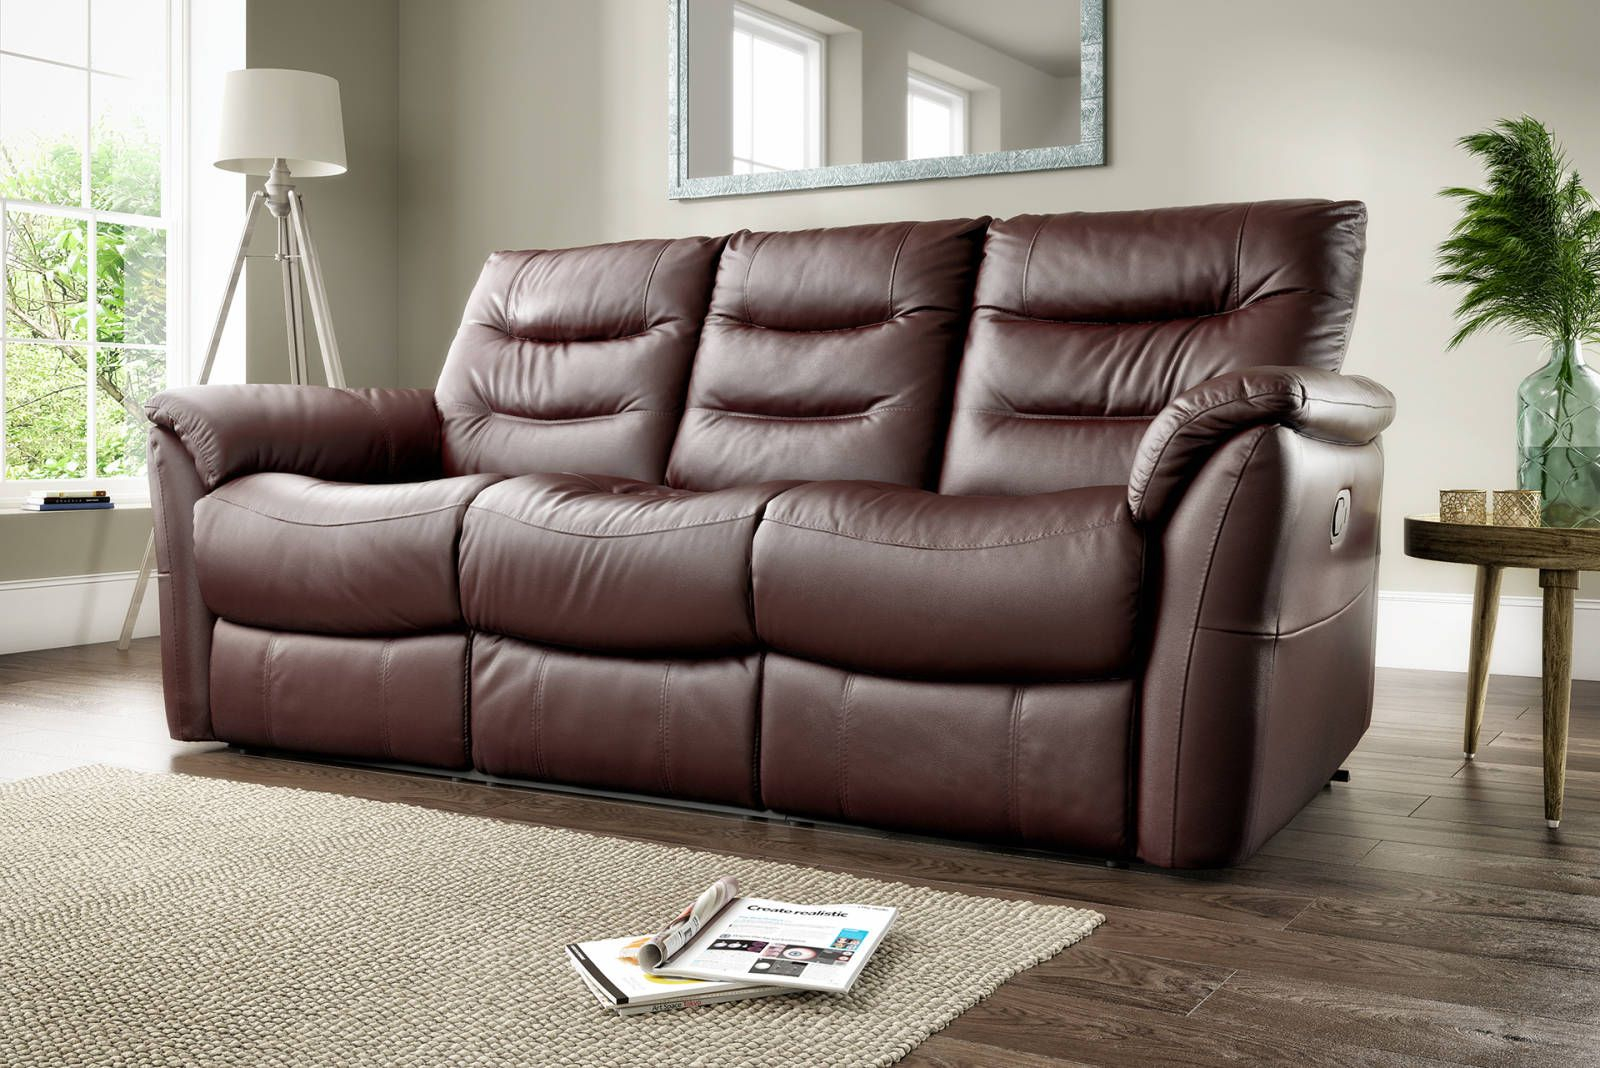 Brody Sofology Sofa Power Recliners Space Saving pertaining to measurements 1600 X 1068